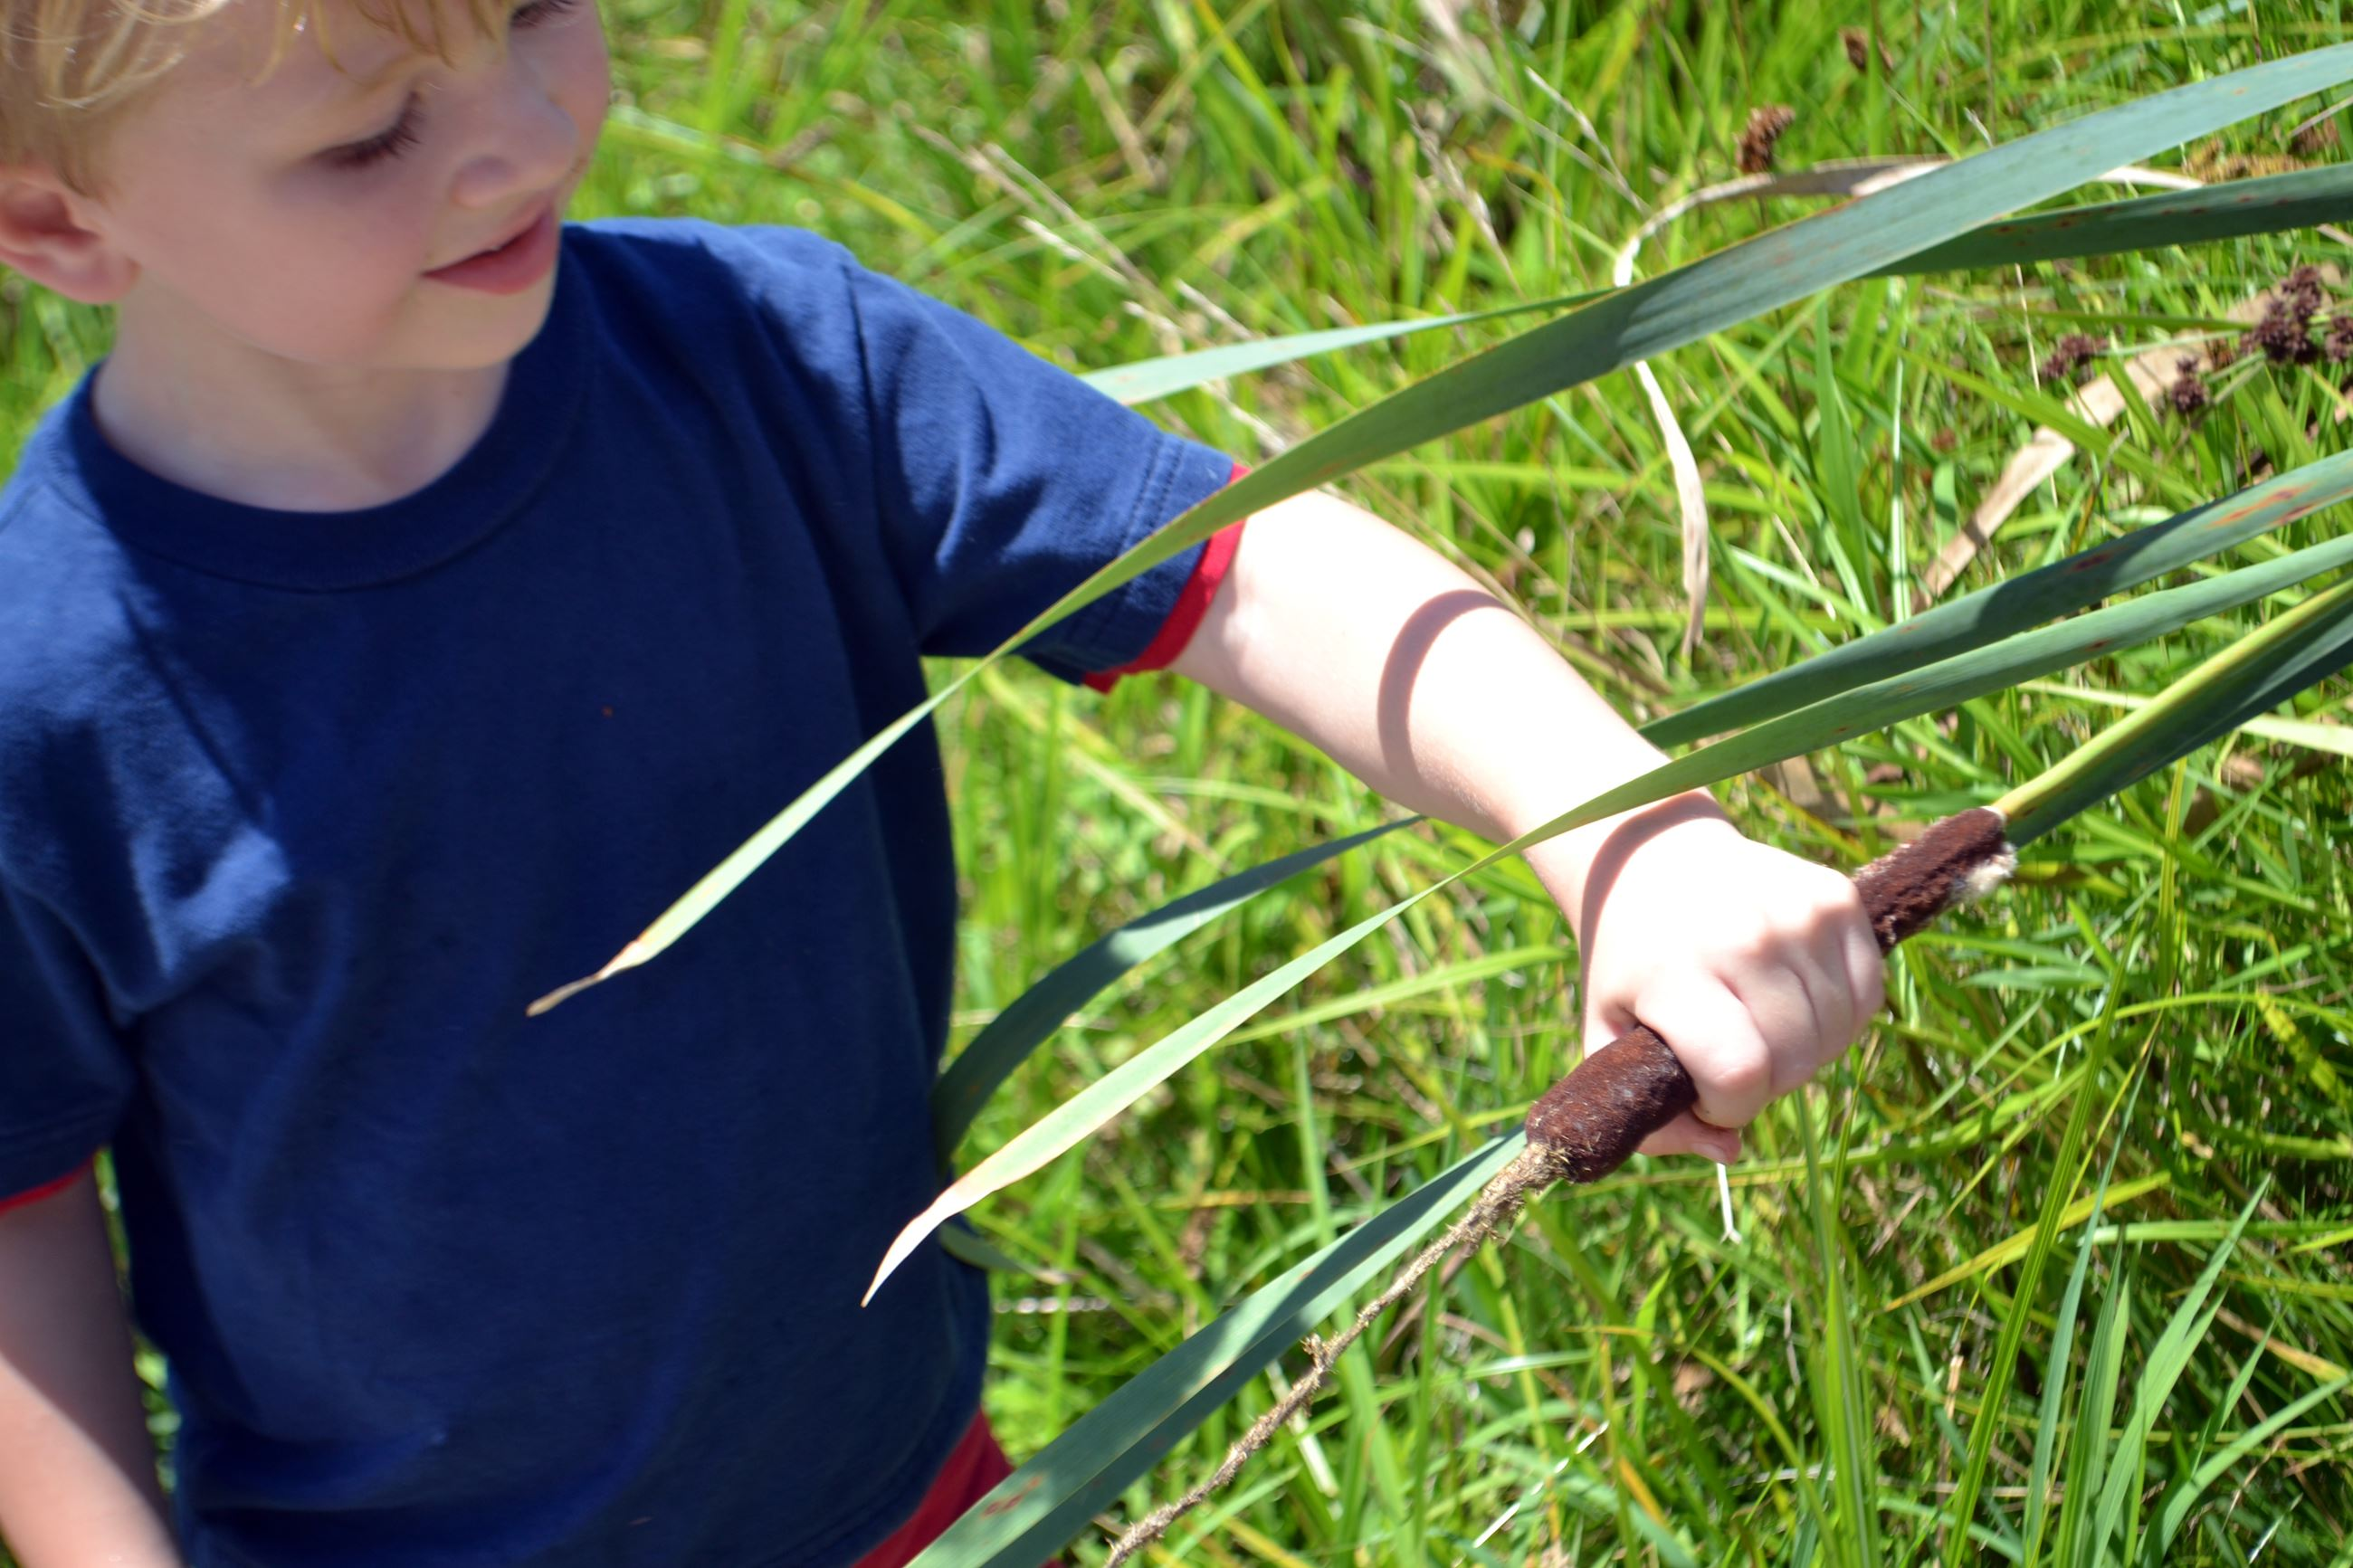 Child holding a cattail